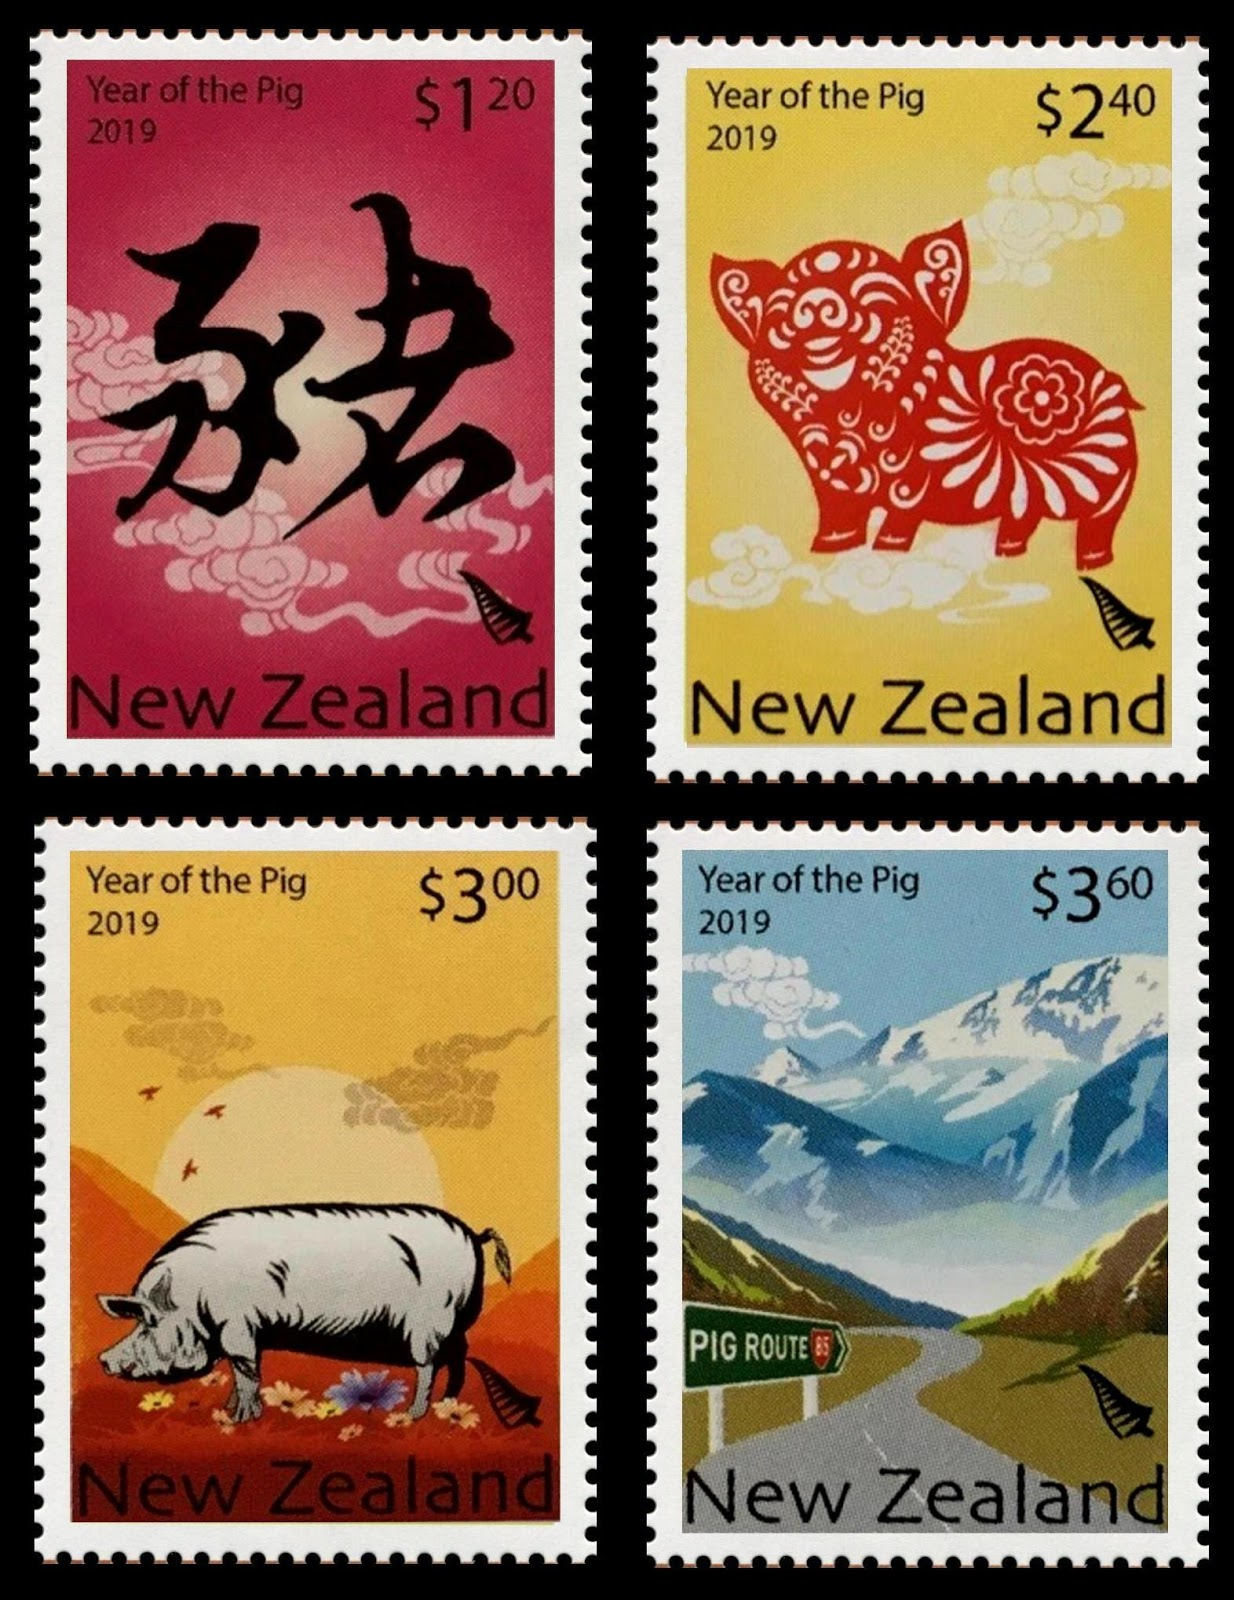 New Zealand - Year of the Pig (January 20, 2019)